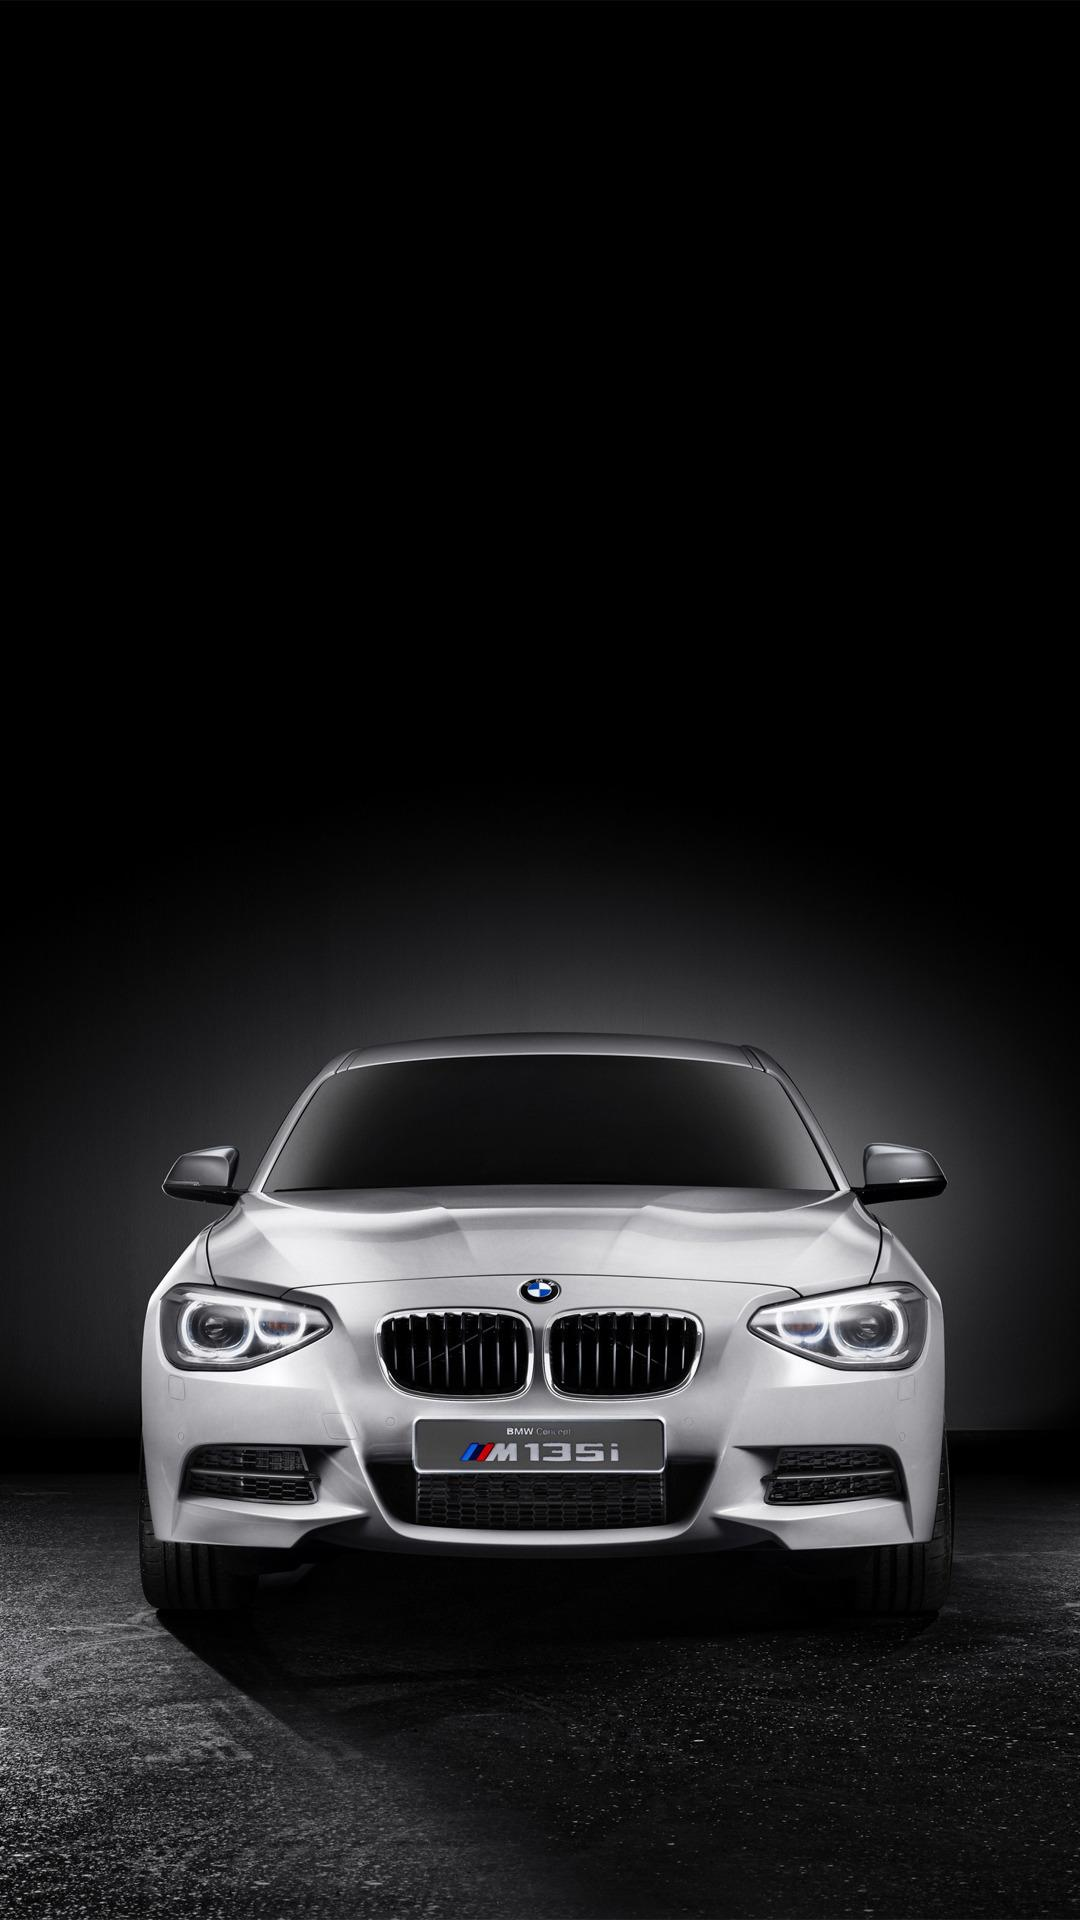 Car For Mobile Wallpapers Wallpaper Cave